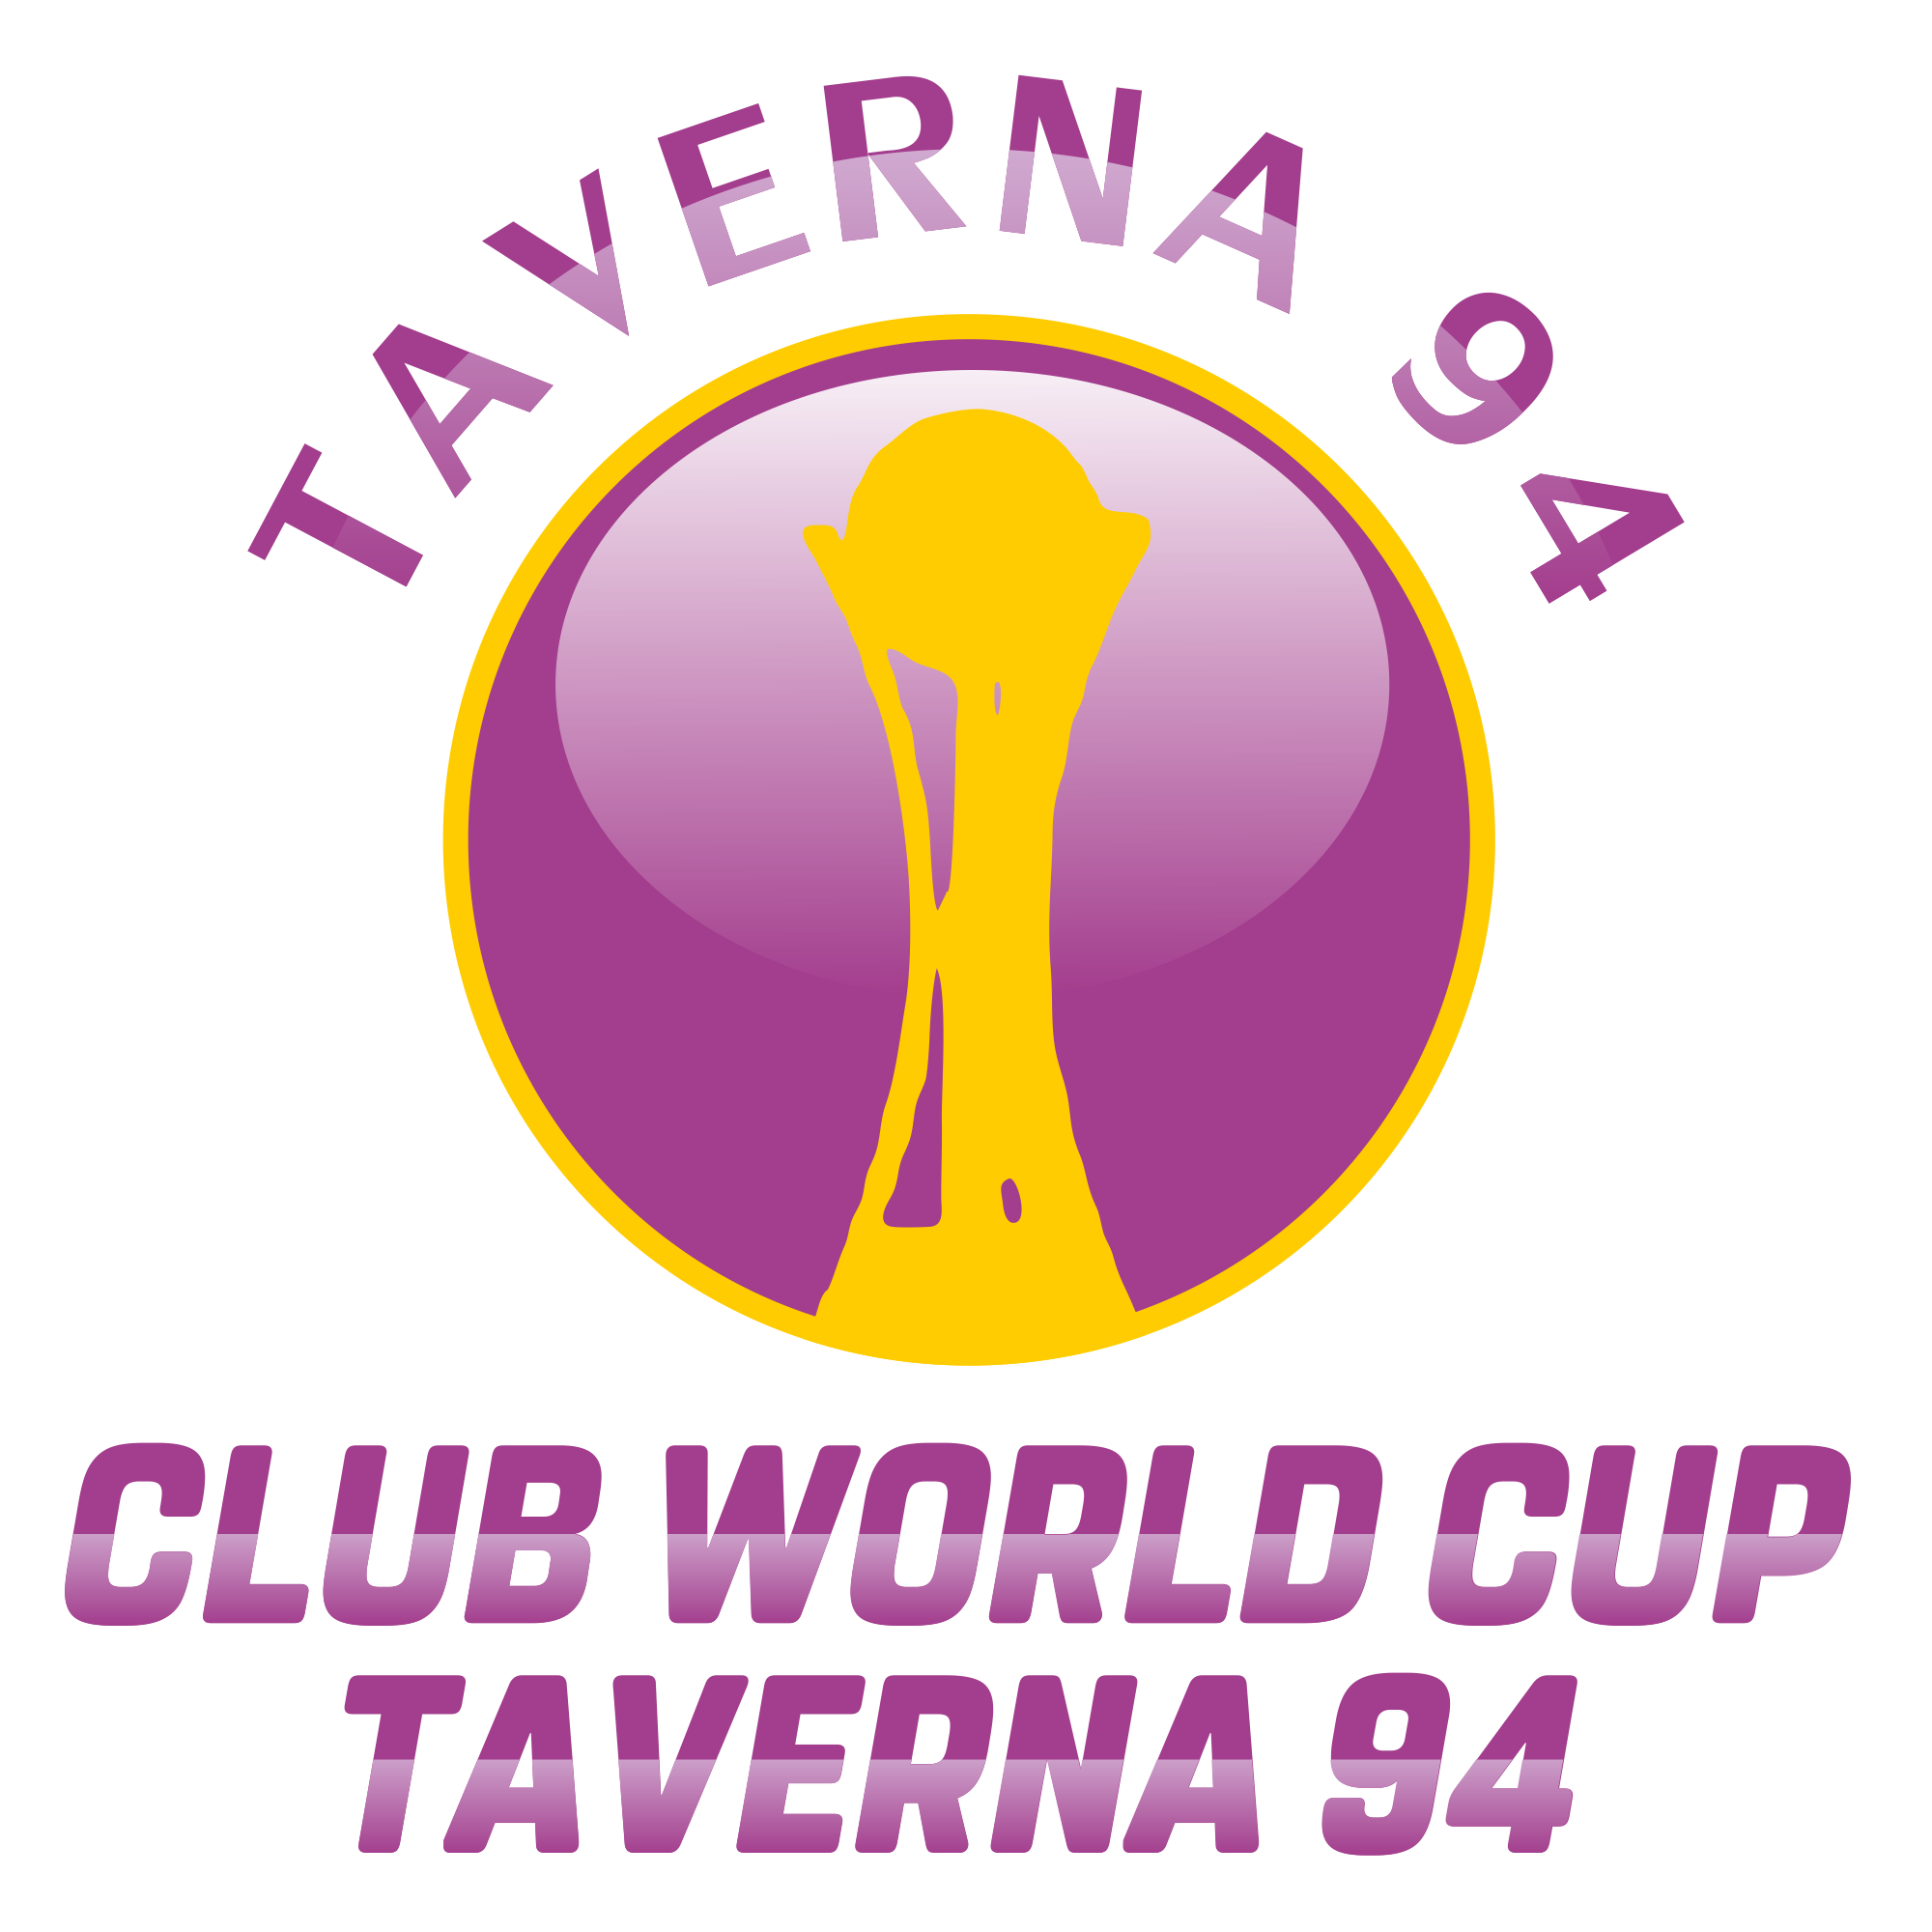 Taverna 94 Icona Club World Cup